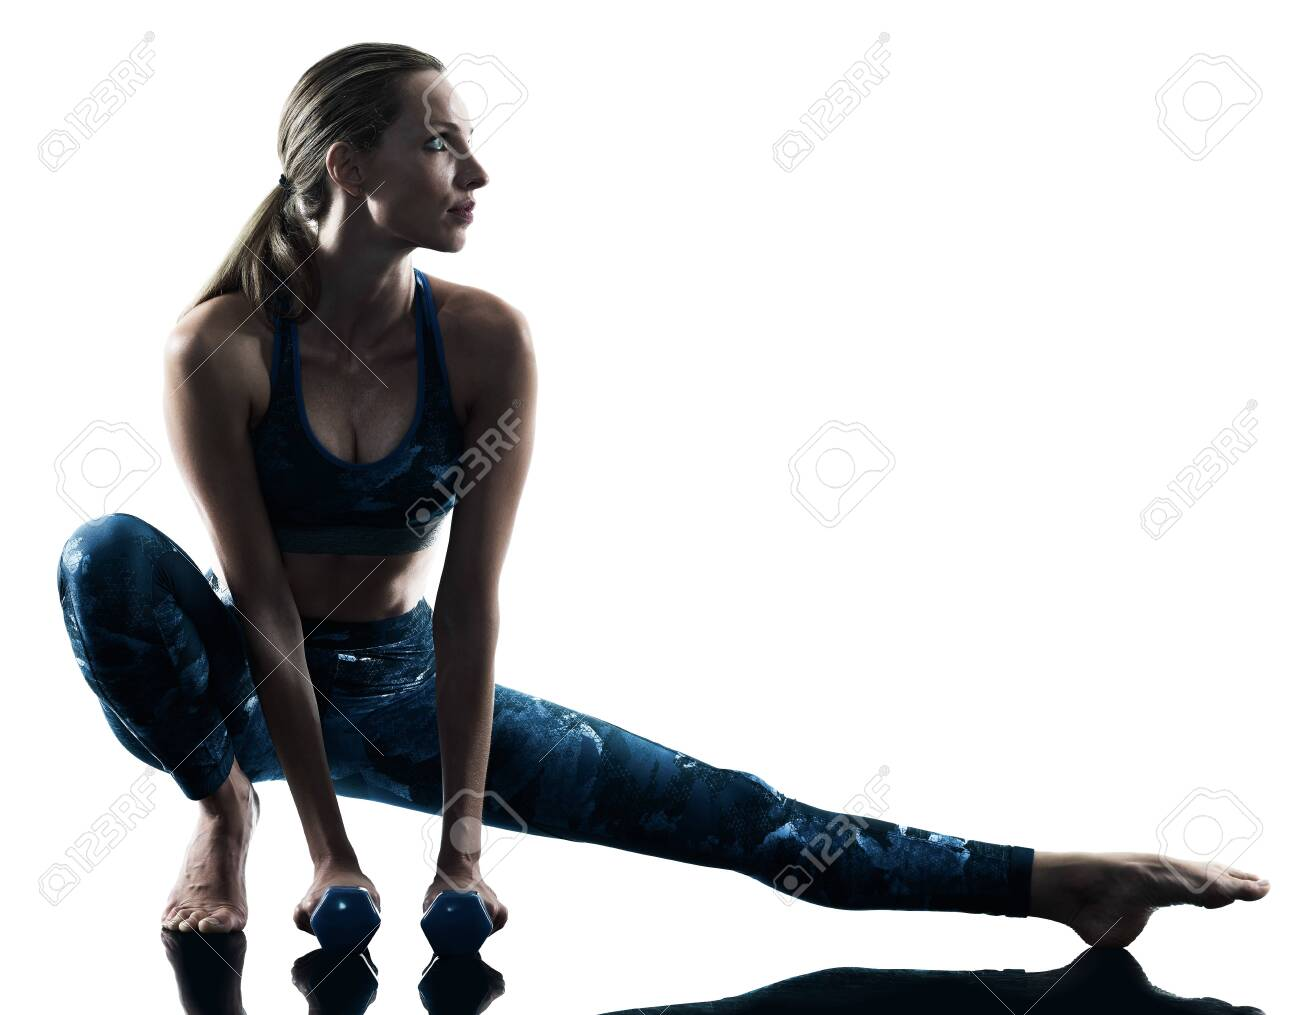 one caucasian woman exercising fitness weights excercises in silhouette isolated on white background - 121656670